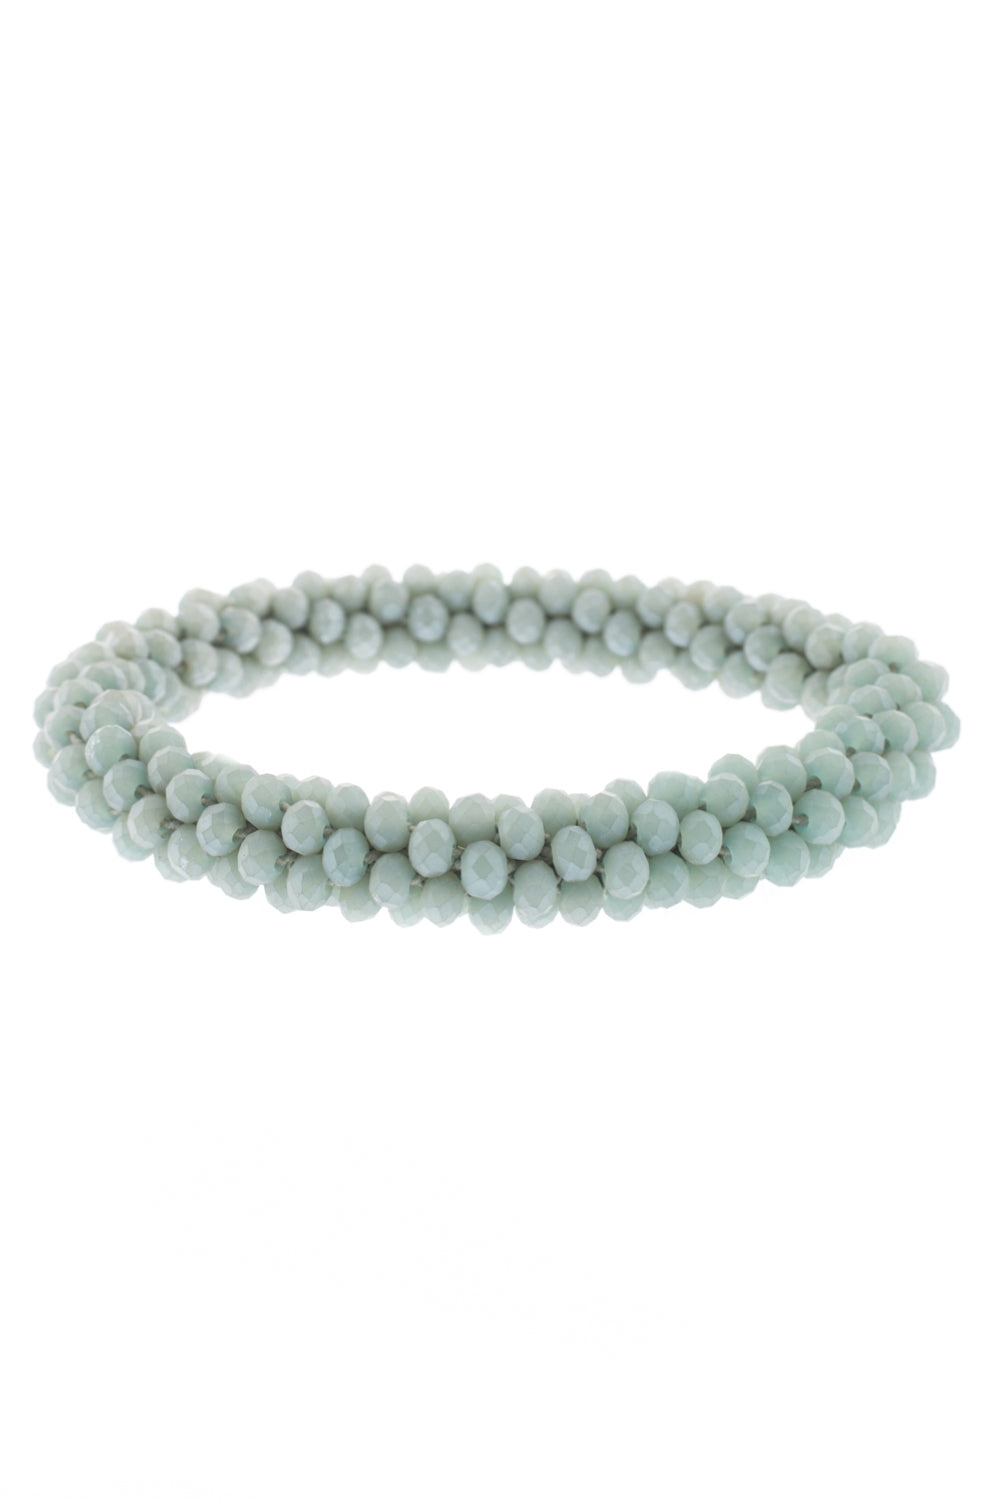 Type 2 Misty Morning Bracelet